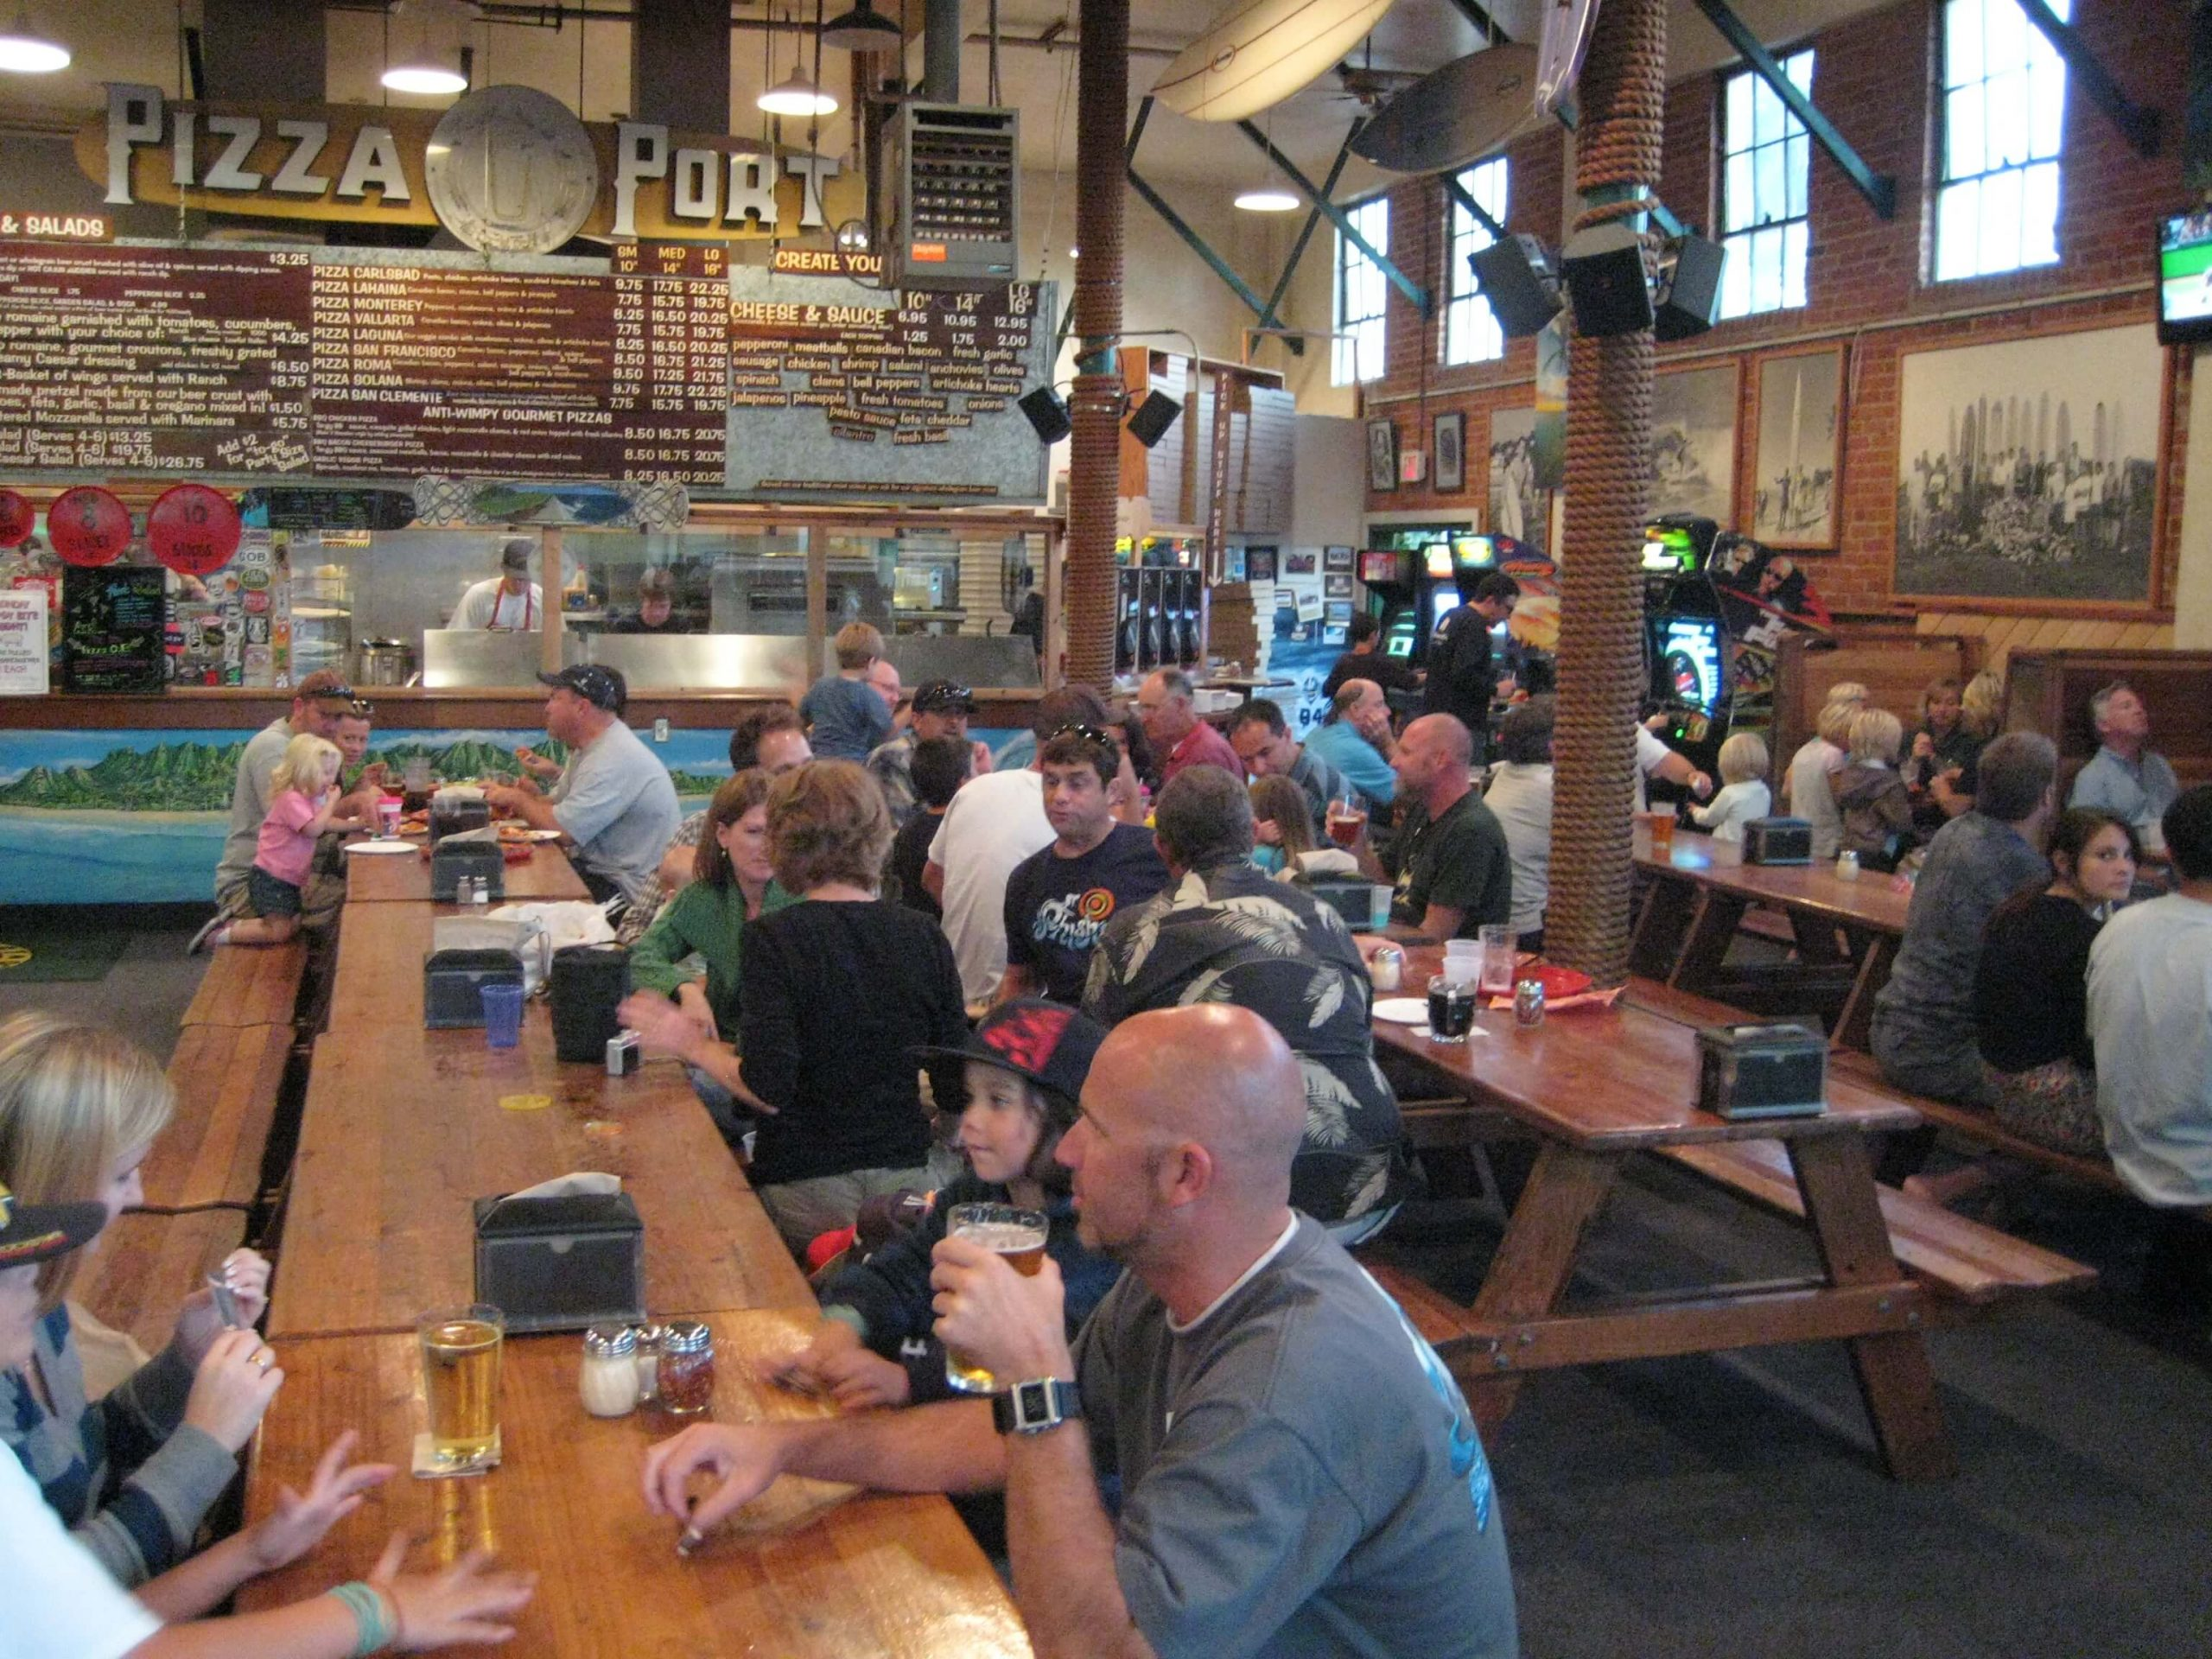 Inside the Pizza Port Brewing Company taproom in Carlsbad, California